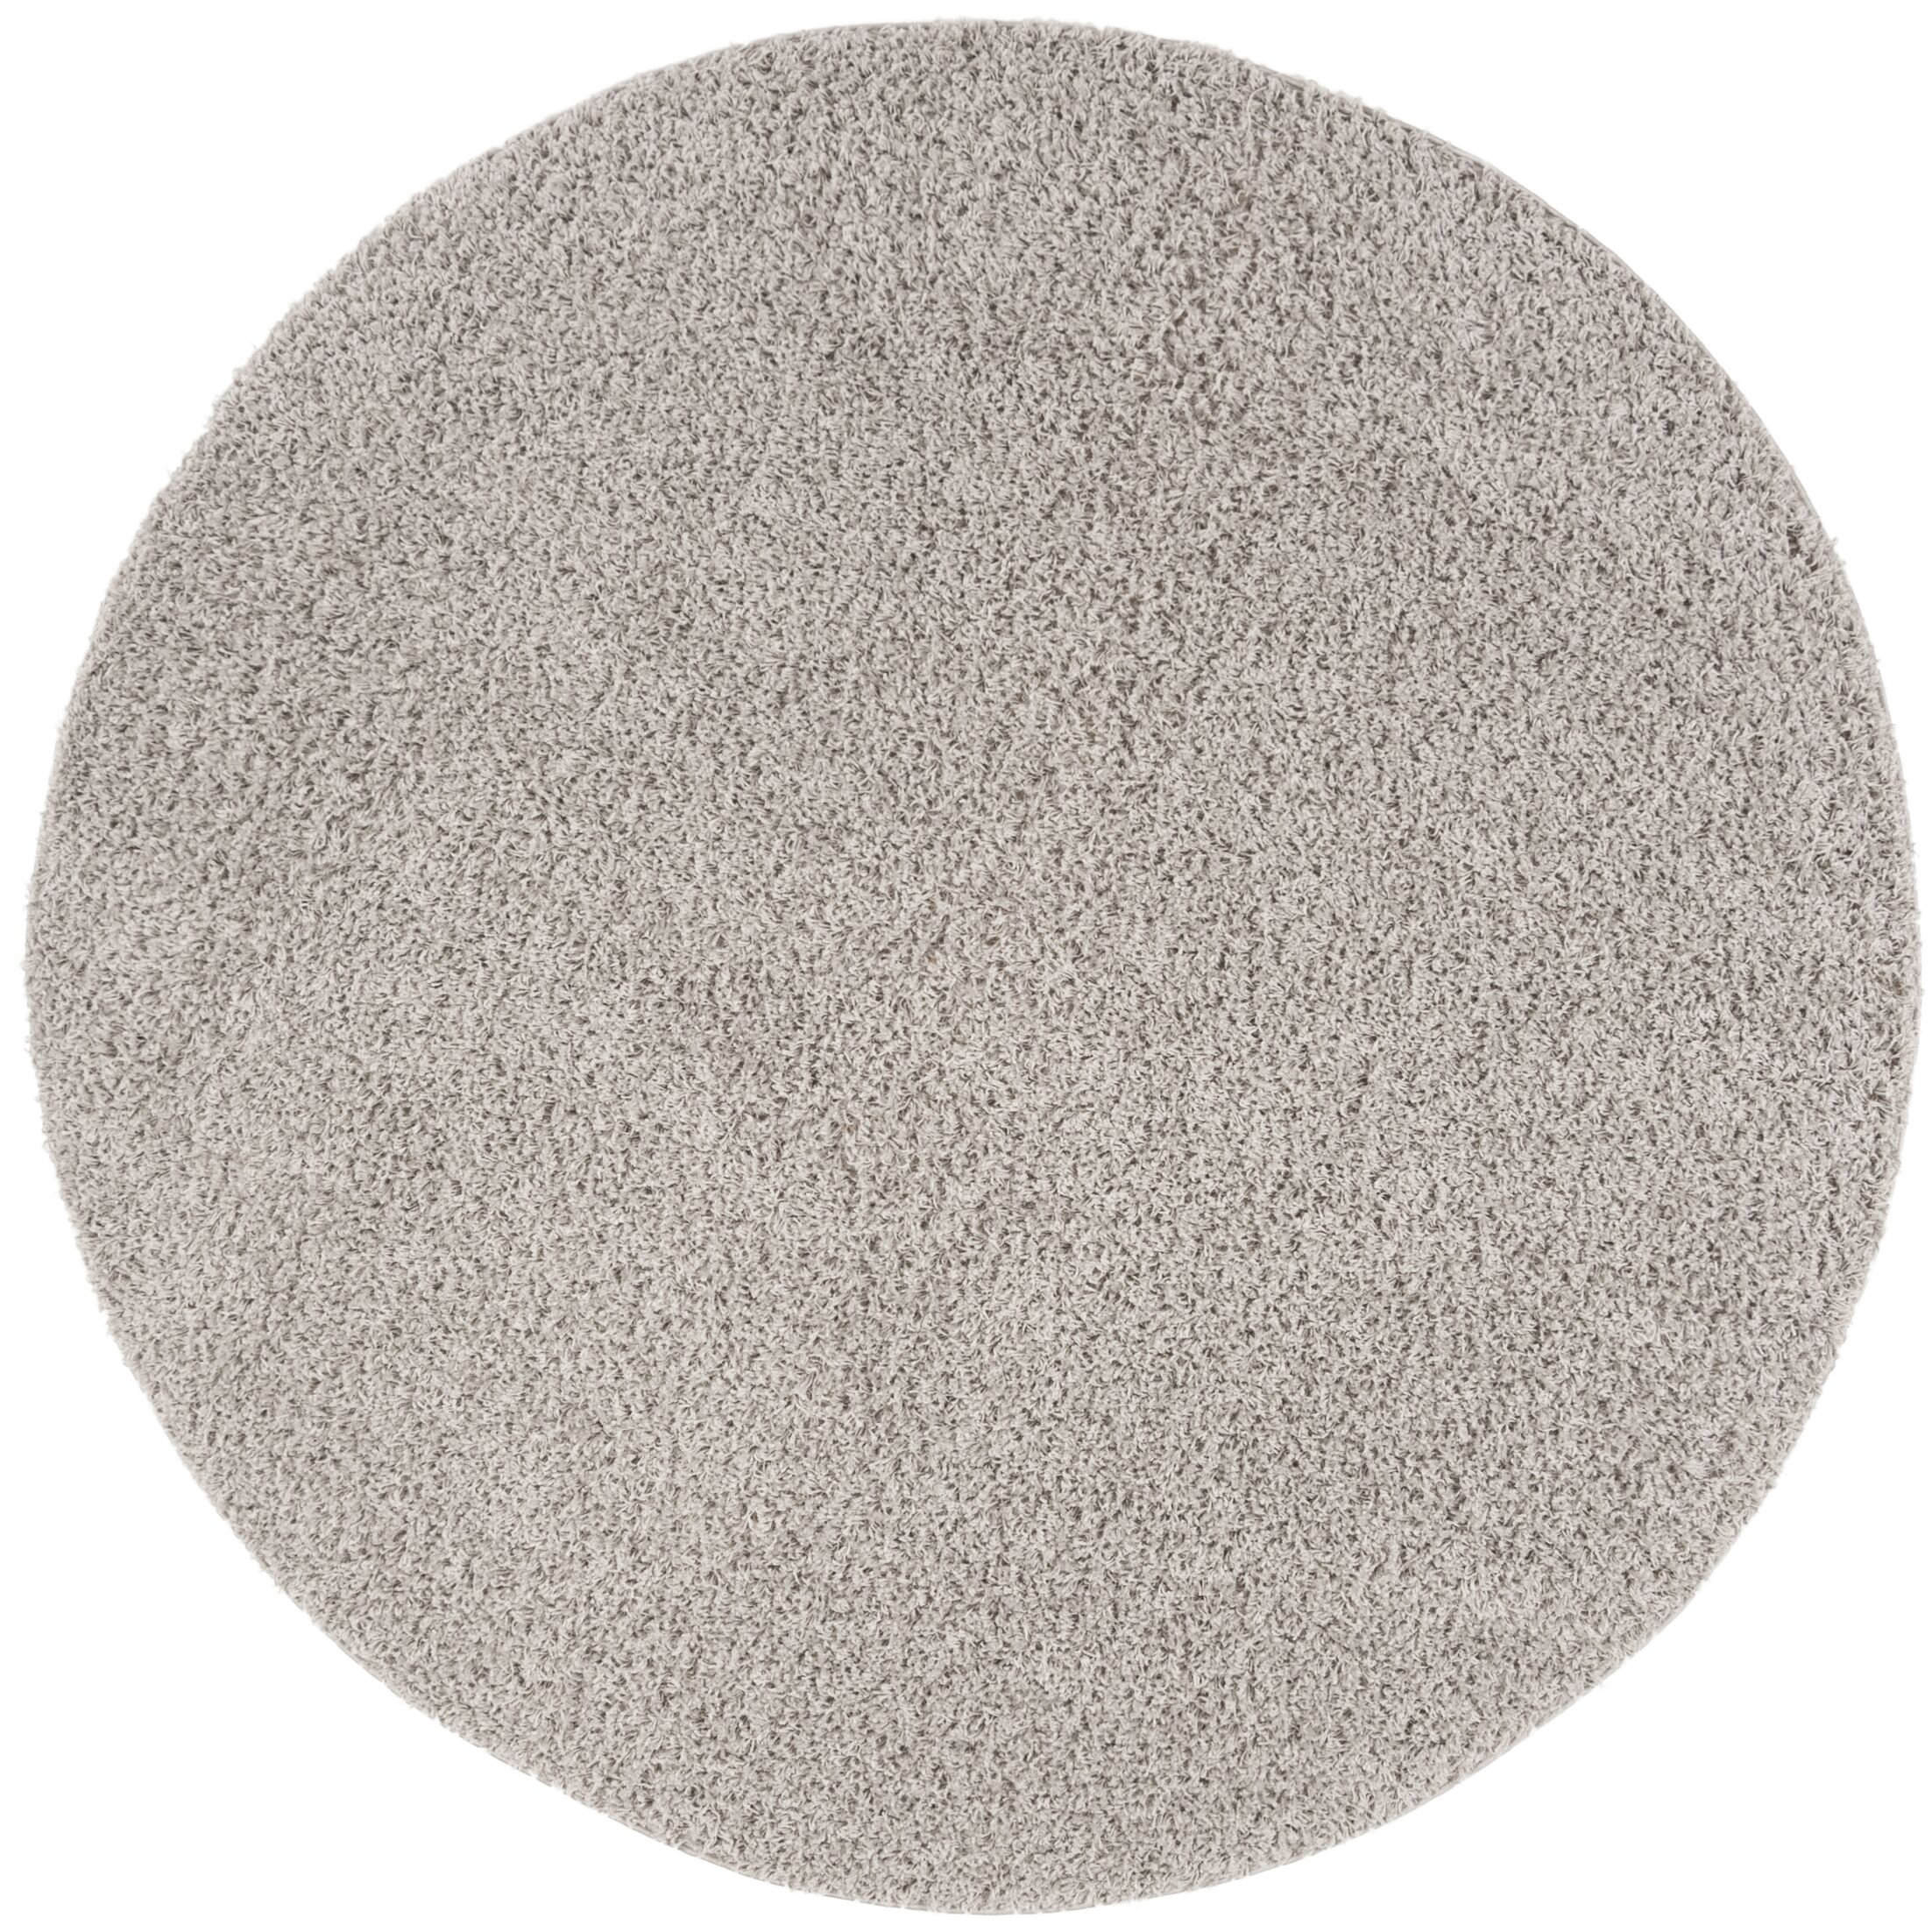 Fornax Shag Silver Area Rug Rug Size: Round 6'7